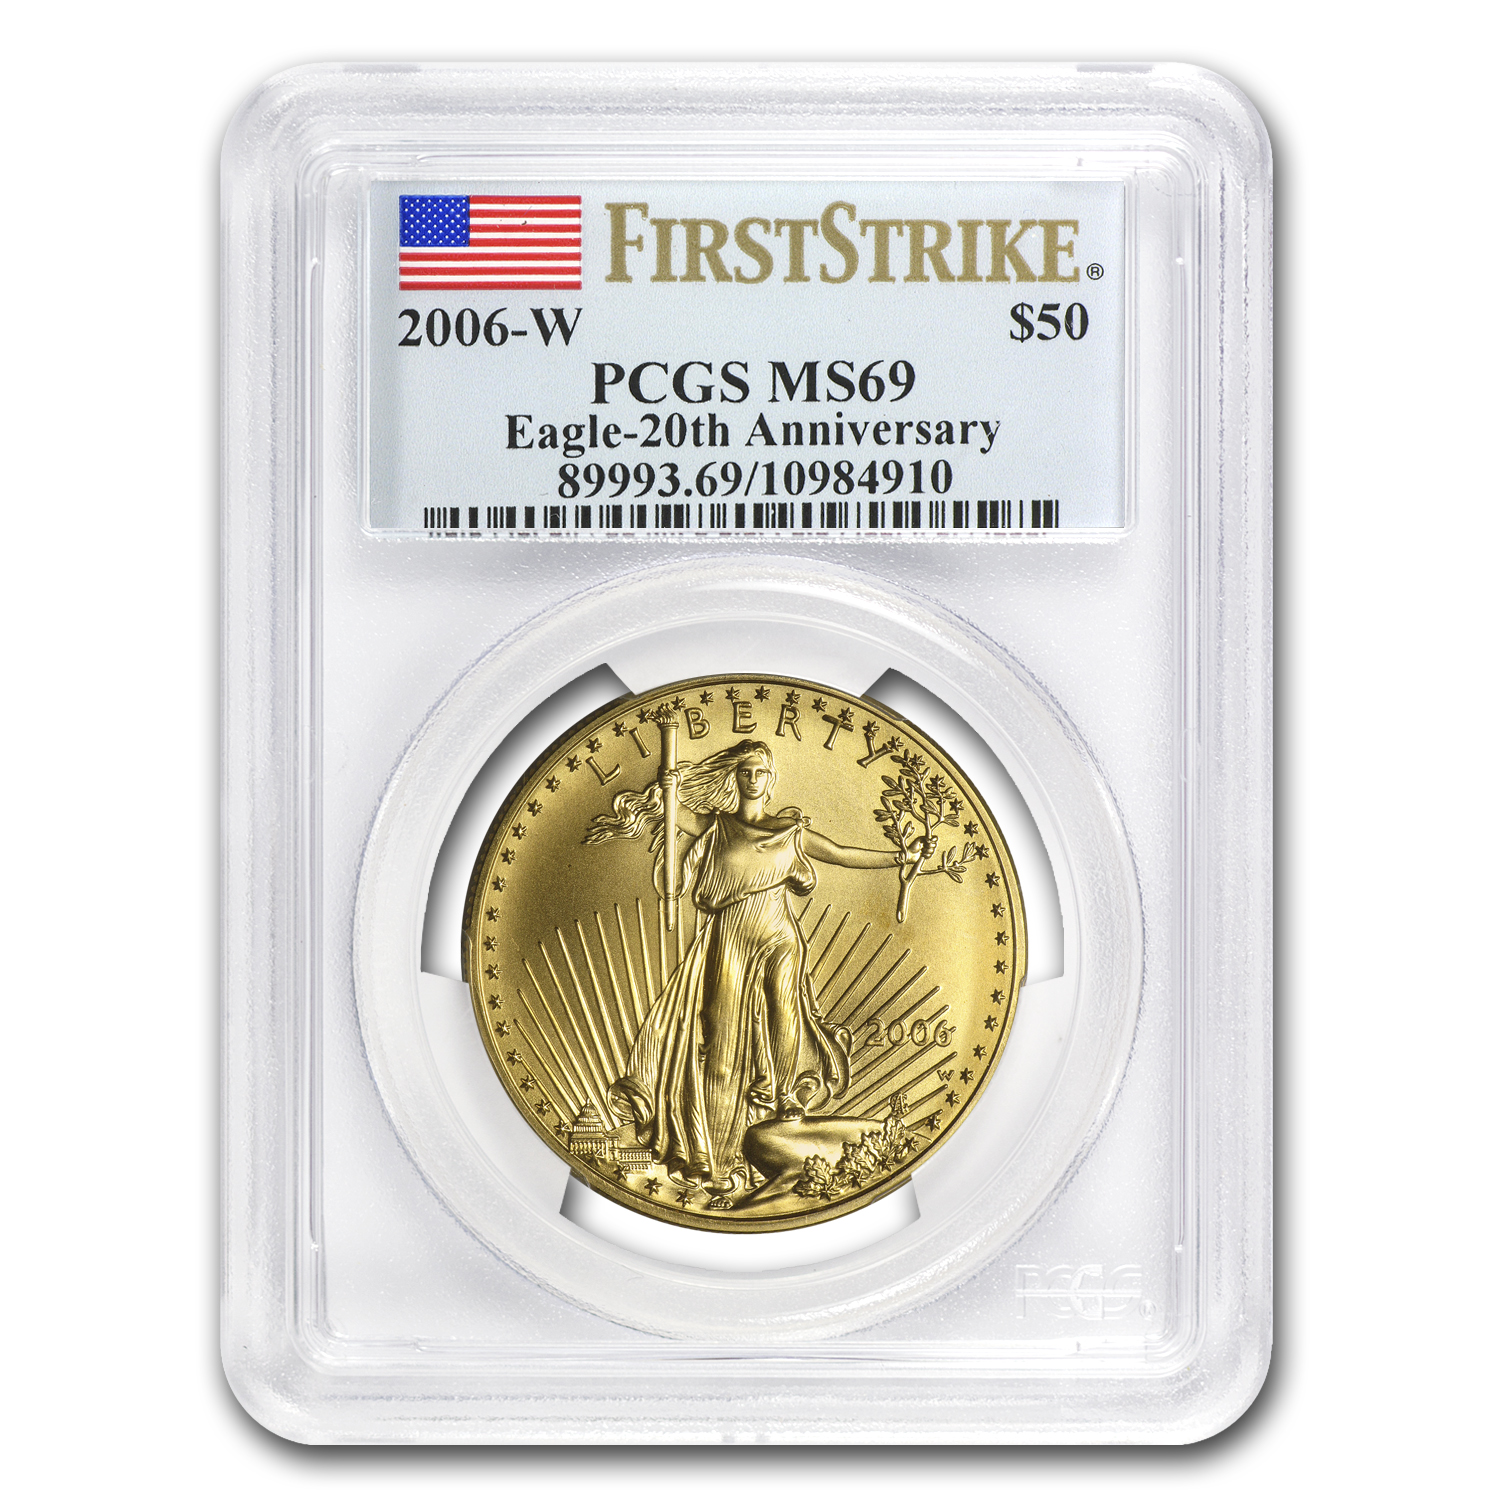 2006-W 1 oz Burnished Gold Eagle MS-69 PCGS (FS) (20th Anniversa)